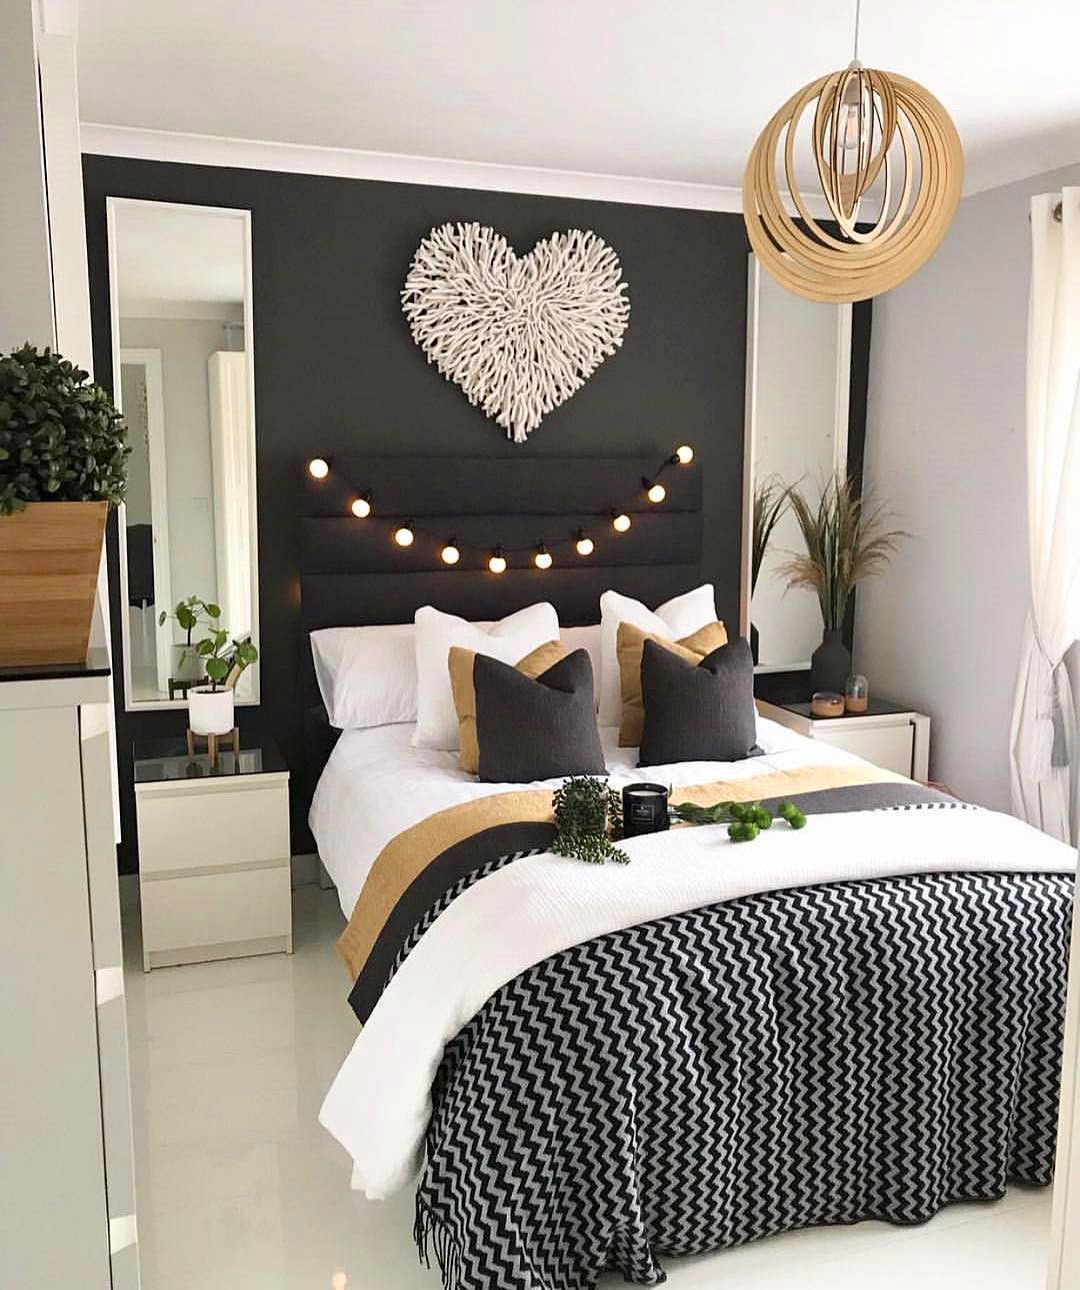 58 Inspiring Modern Bedroom Design Ideas In 2020 Simple Bedroom